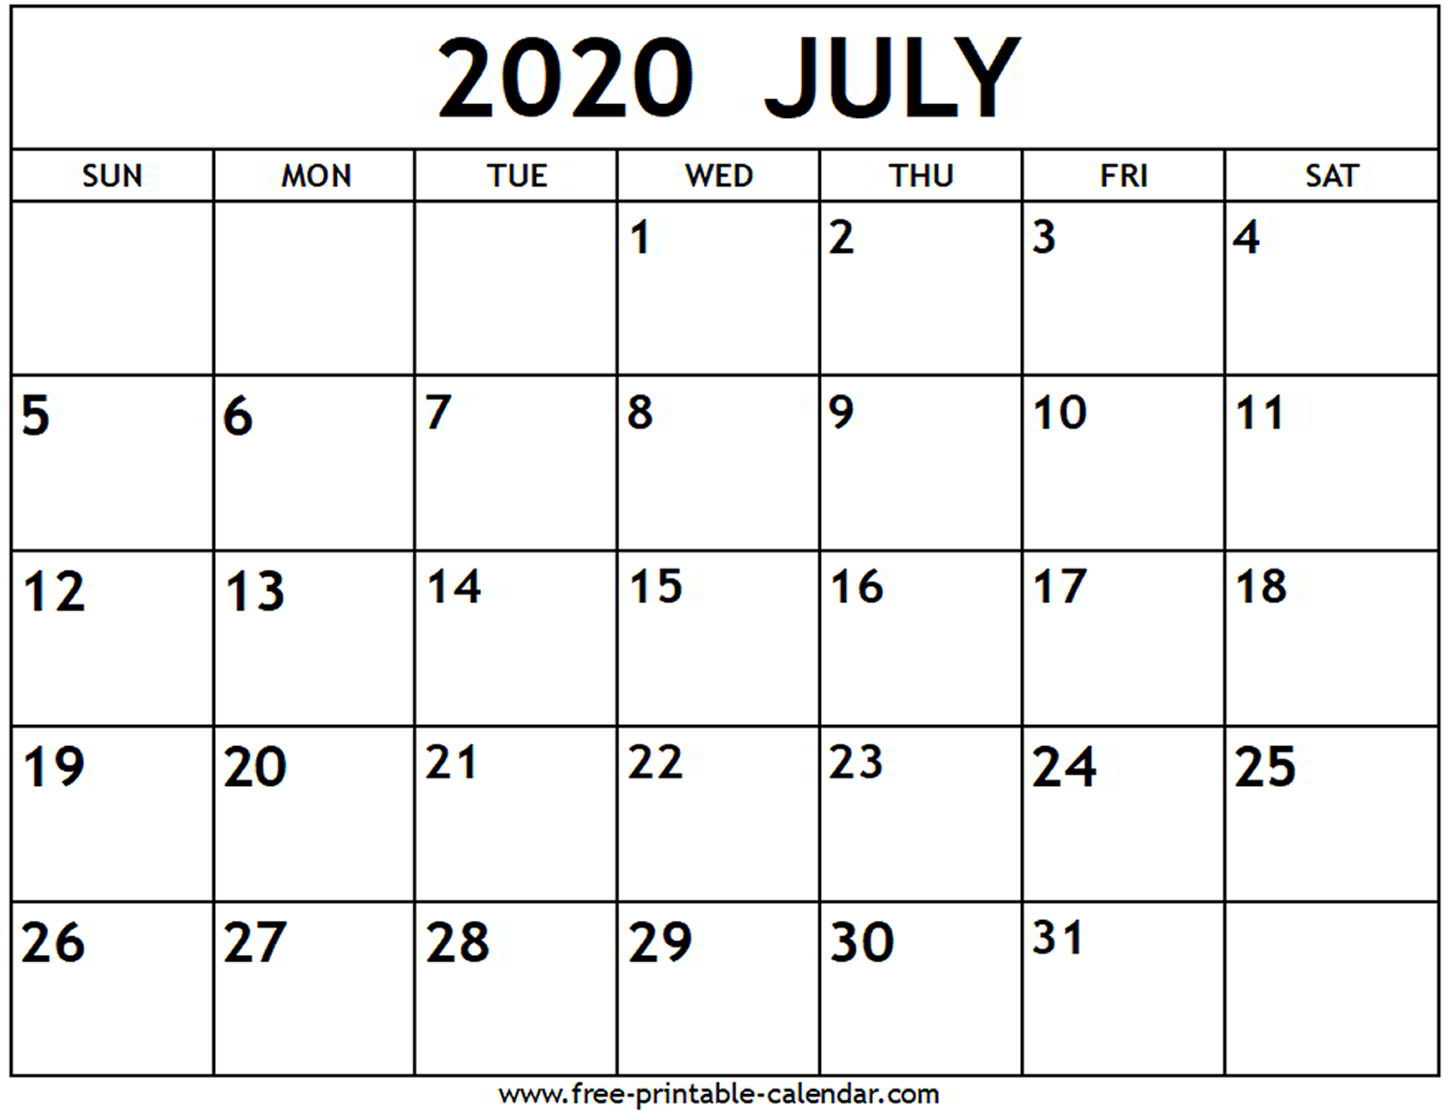 Calendar Printable July 2020 - Tunu.redmini.co